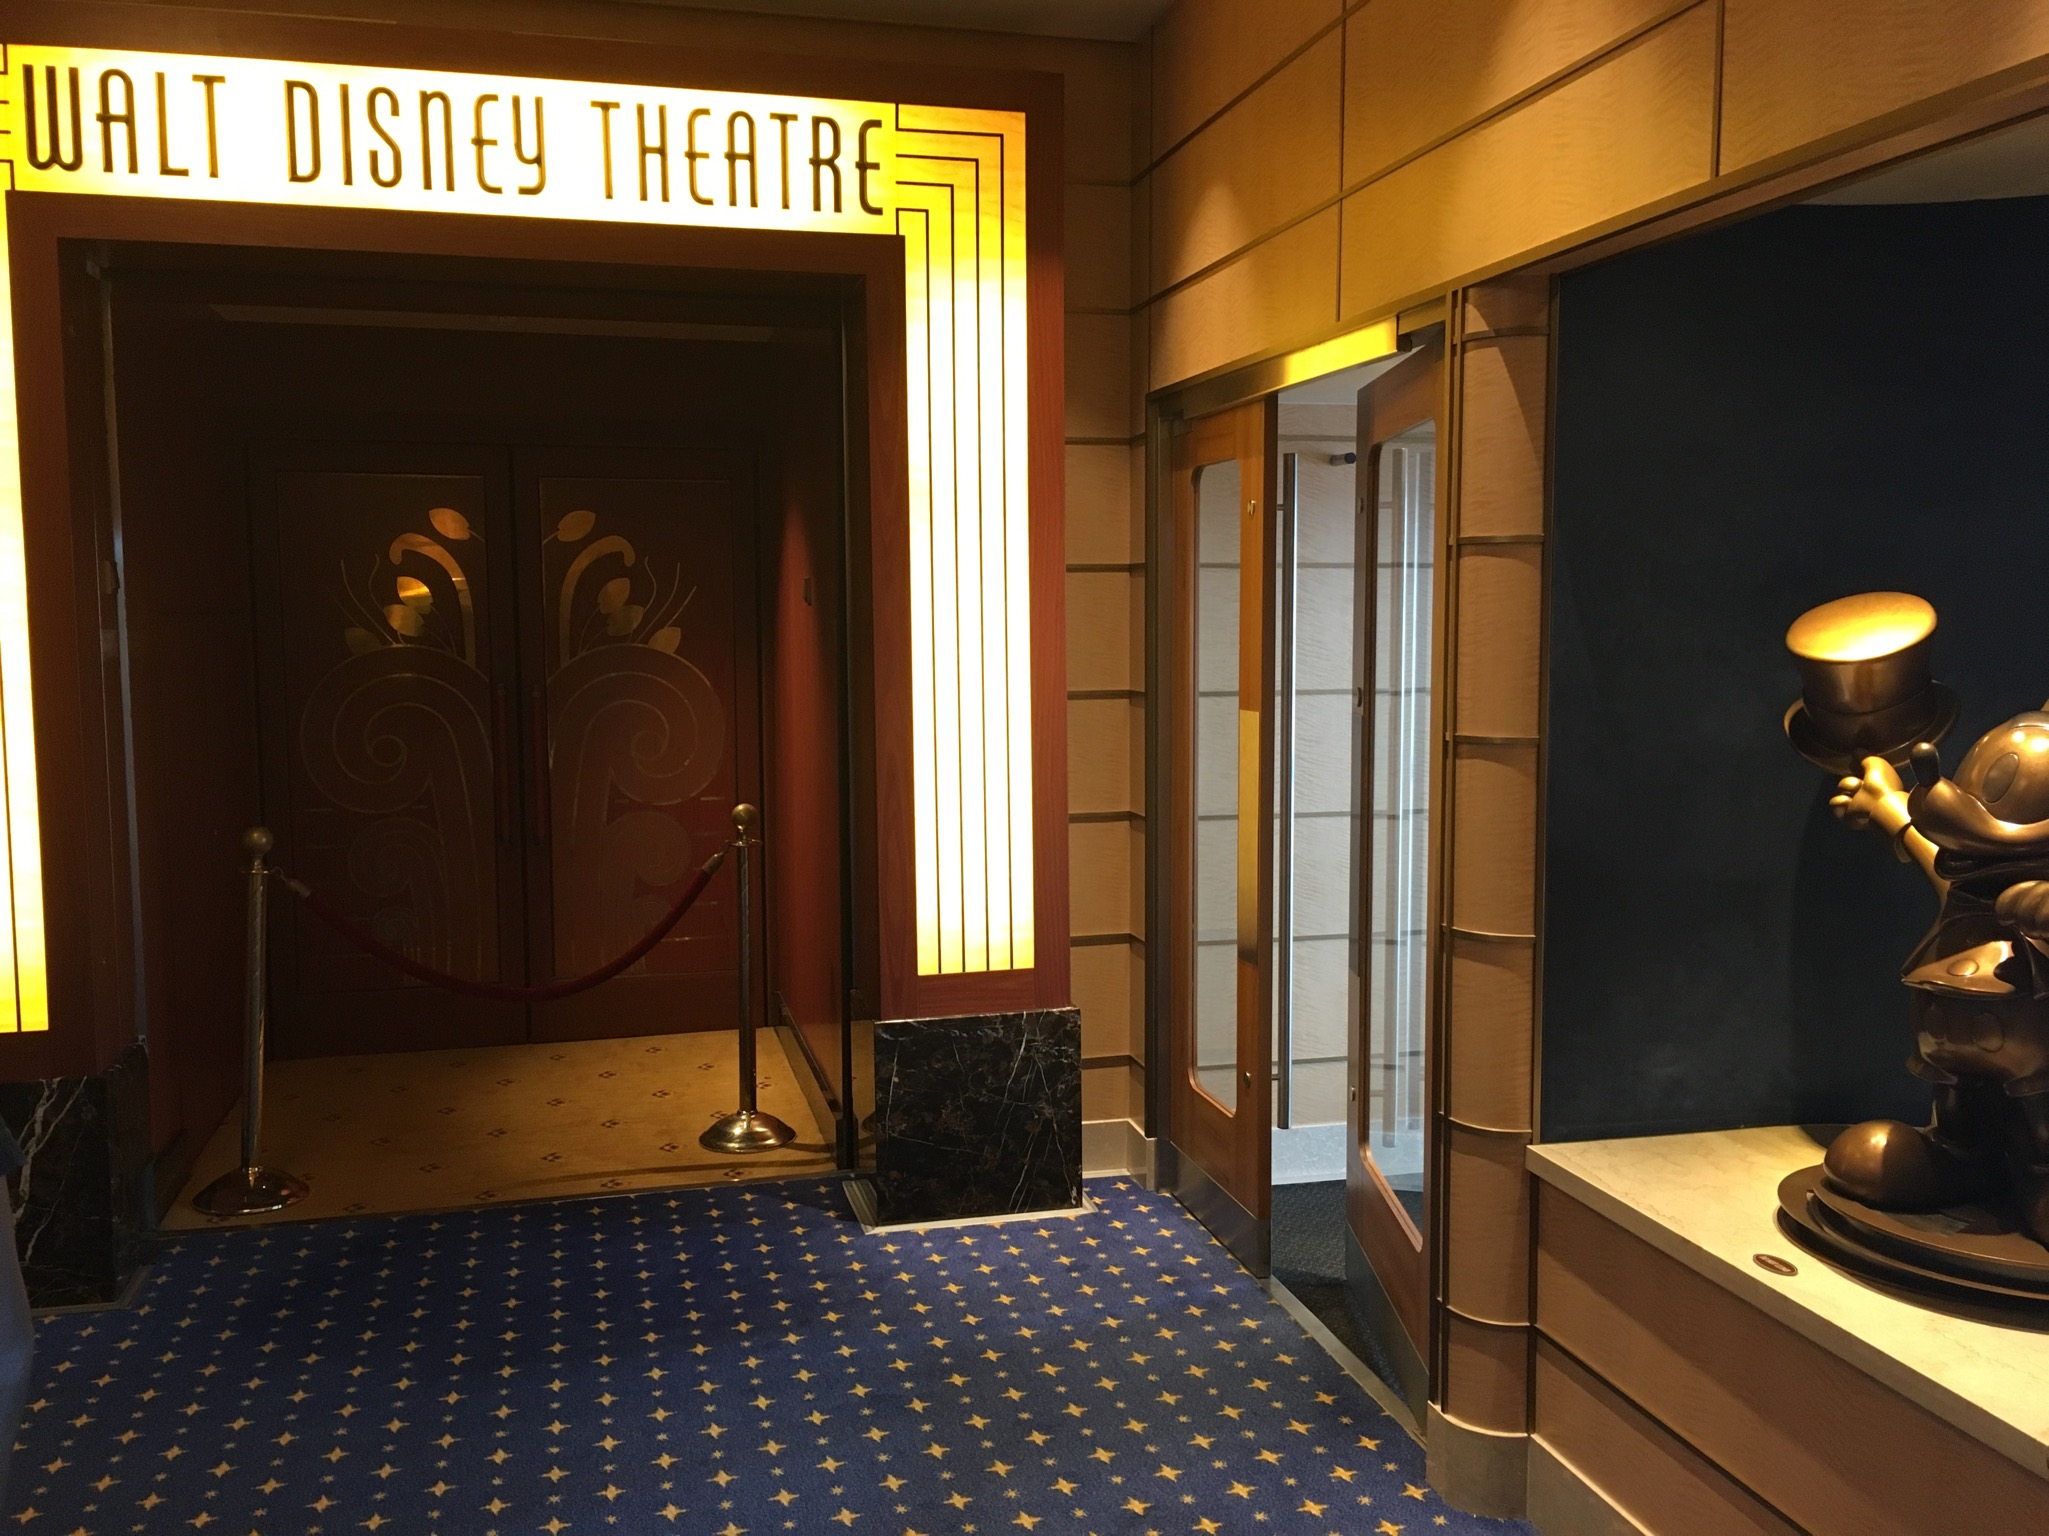 The classy entrance to the Walt Disney Theatre